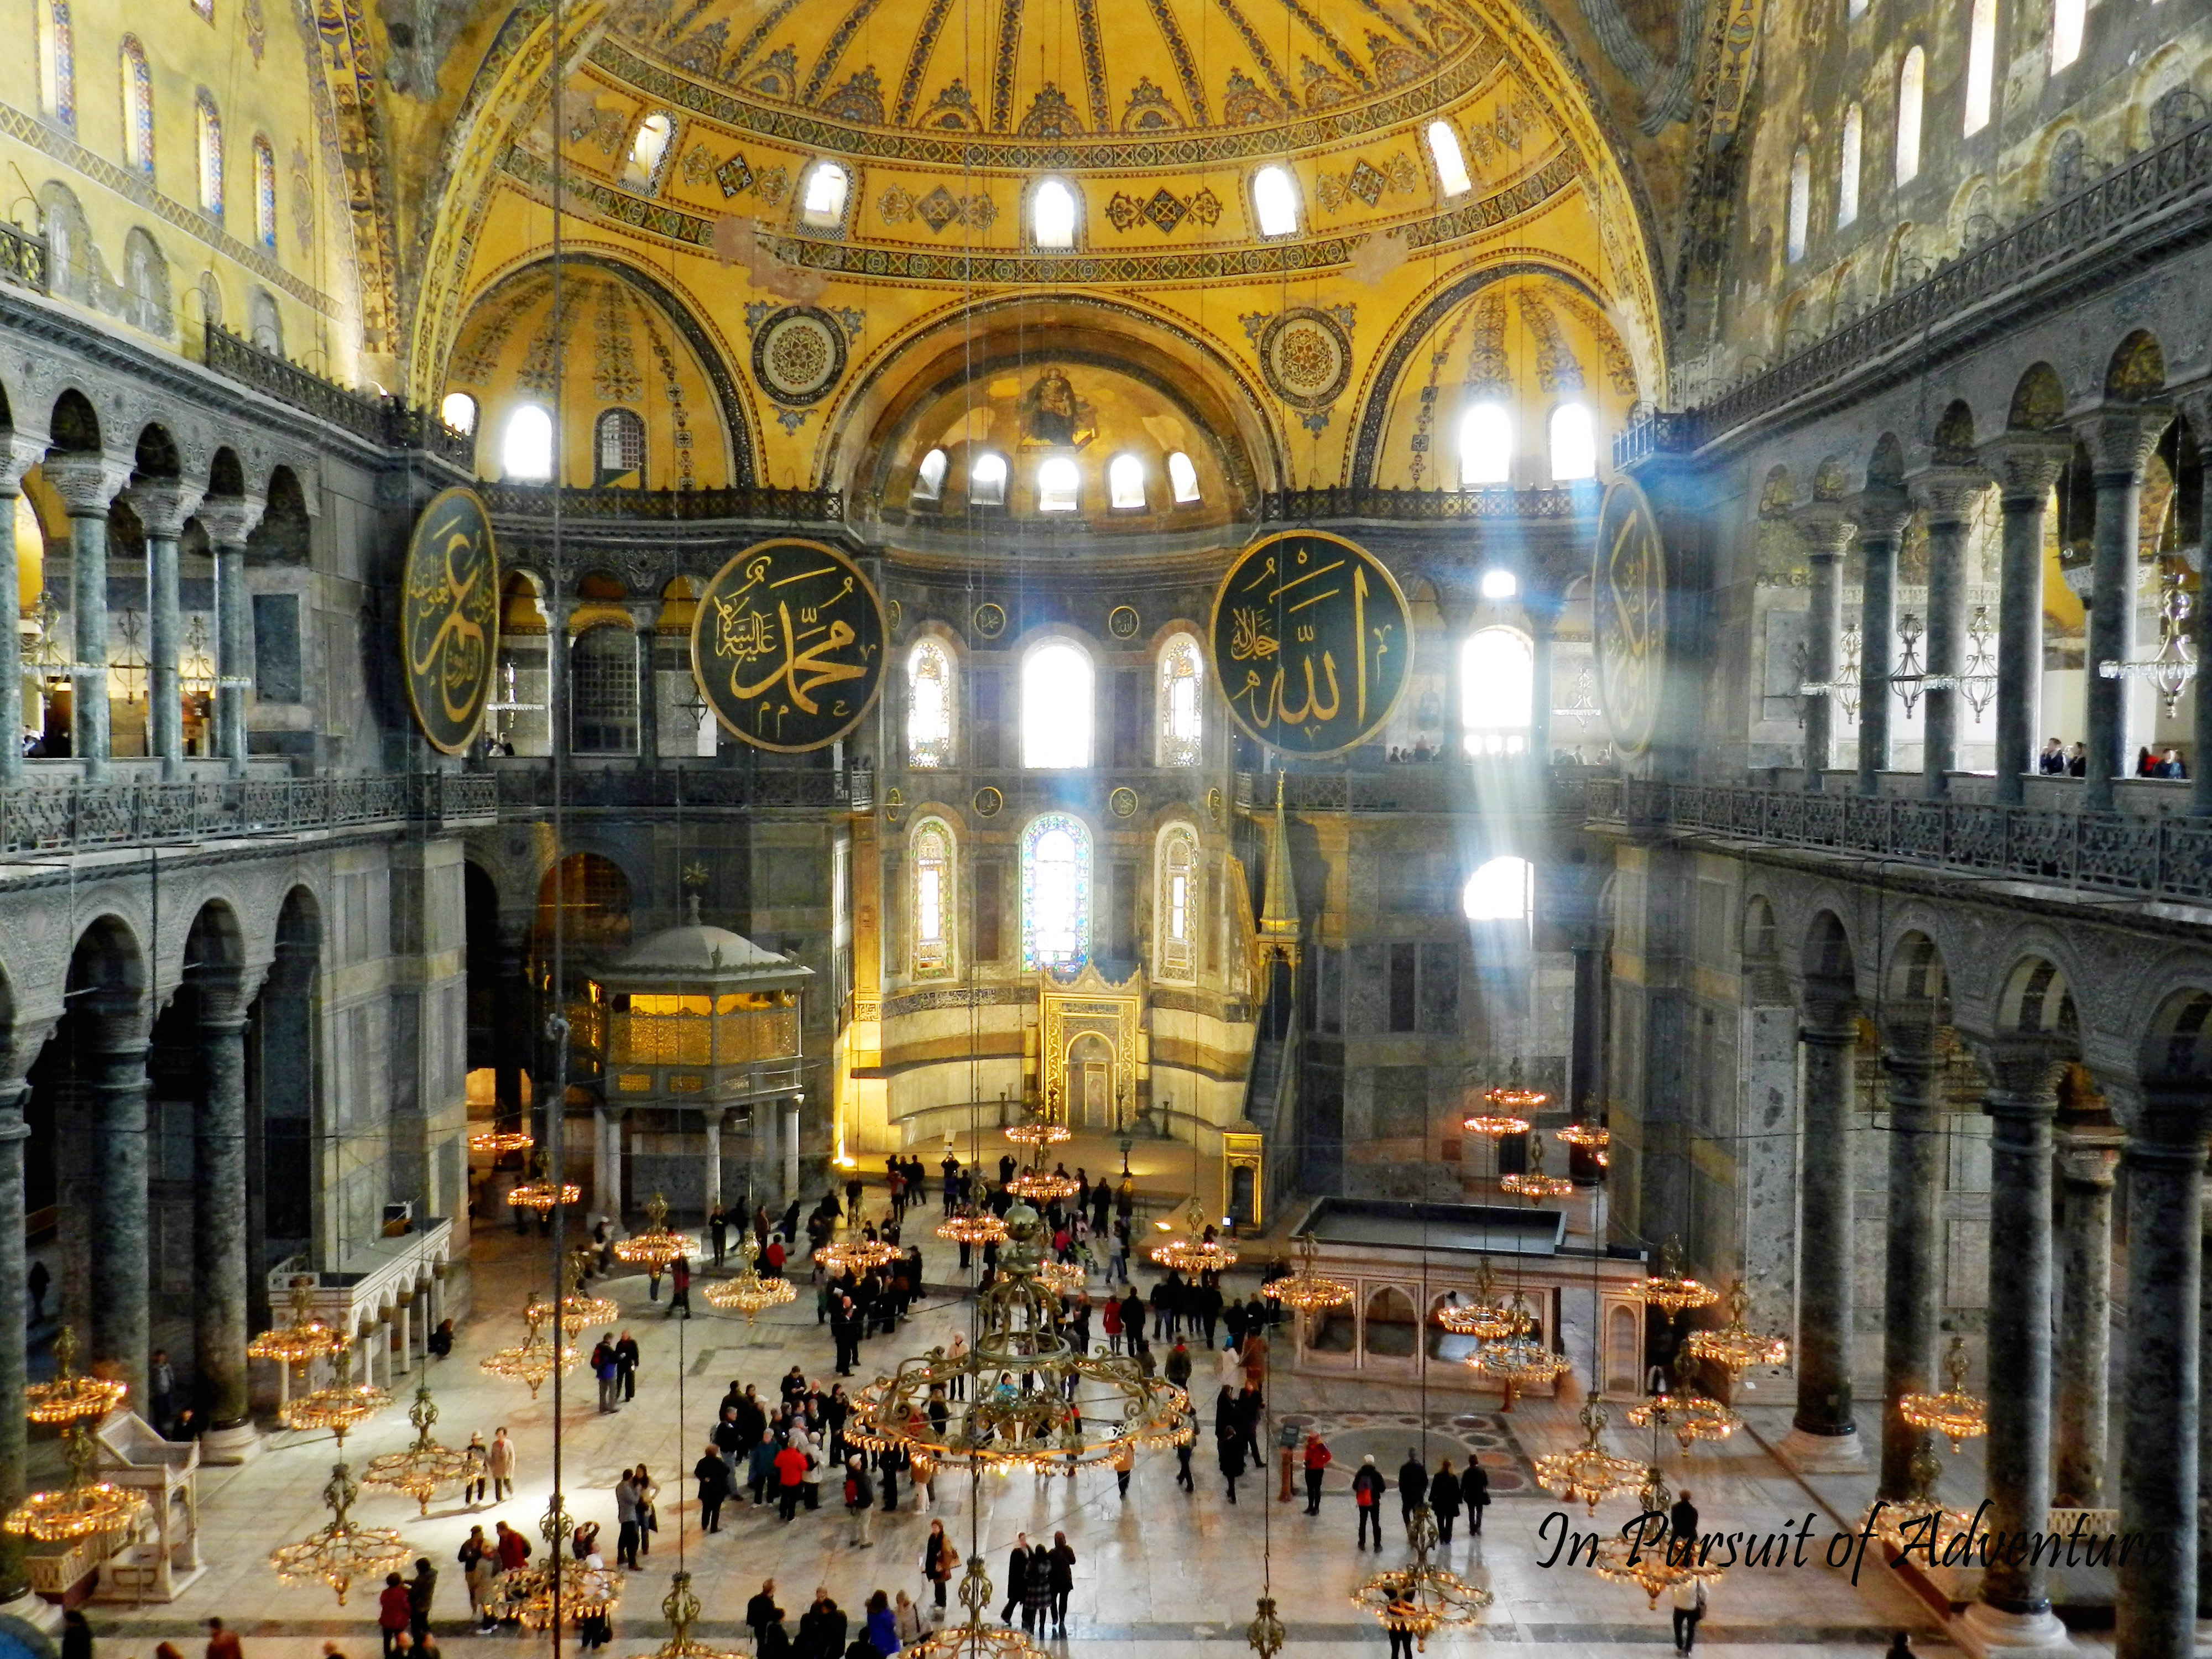 change over time essay hagia sophia View hagia sophia research papers on academiaedu for free  oktoechos  hymnography and the asmatic rite of constantinople (early byzantine period.